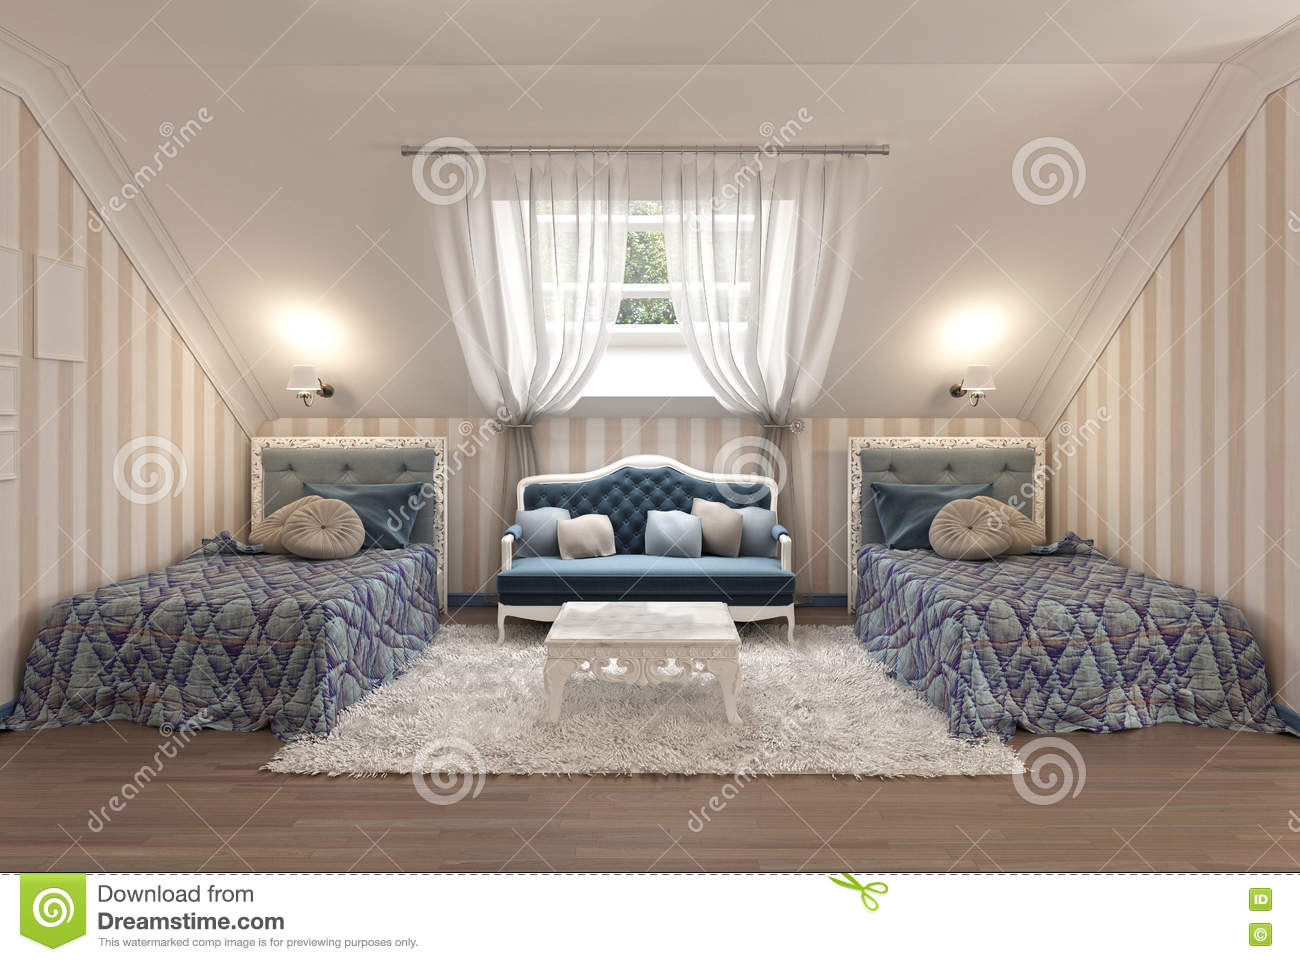 Picture of: Luxury Children S Bedroom For Two Kids With Twin Beds Stock Illustration Illustration Of Lamp House 79489277